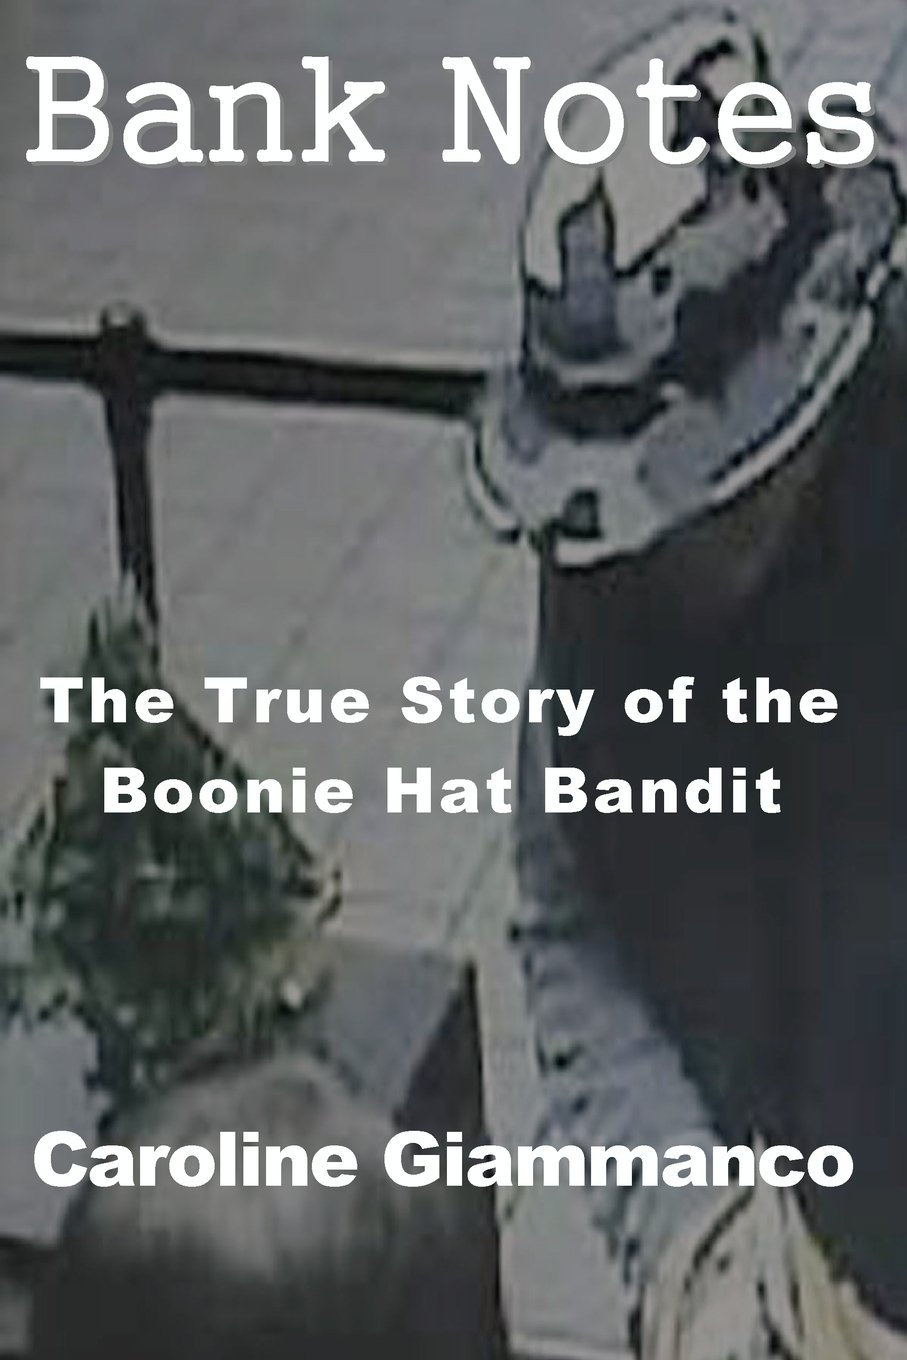 Bank Notes Story Boonie Bandit product image